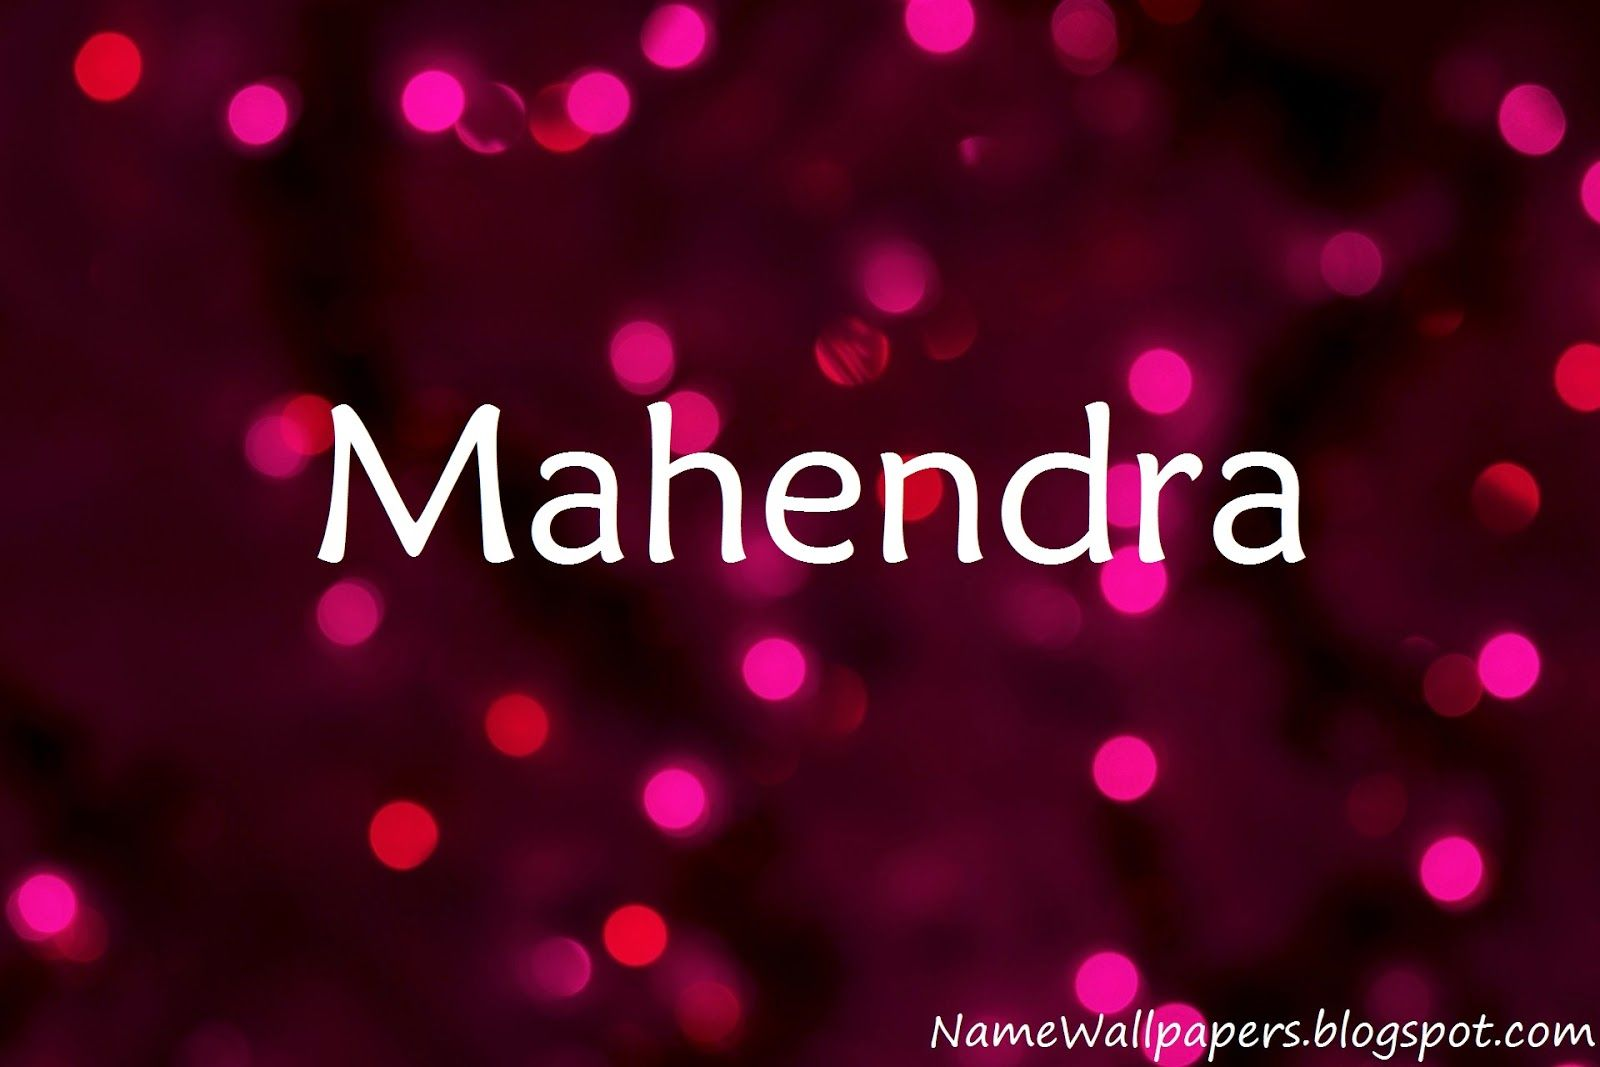 mahendra logo | name logo generator - smoothie, summer, birthday